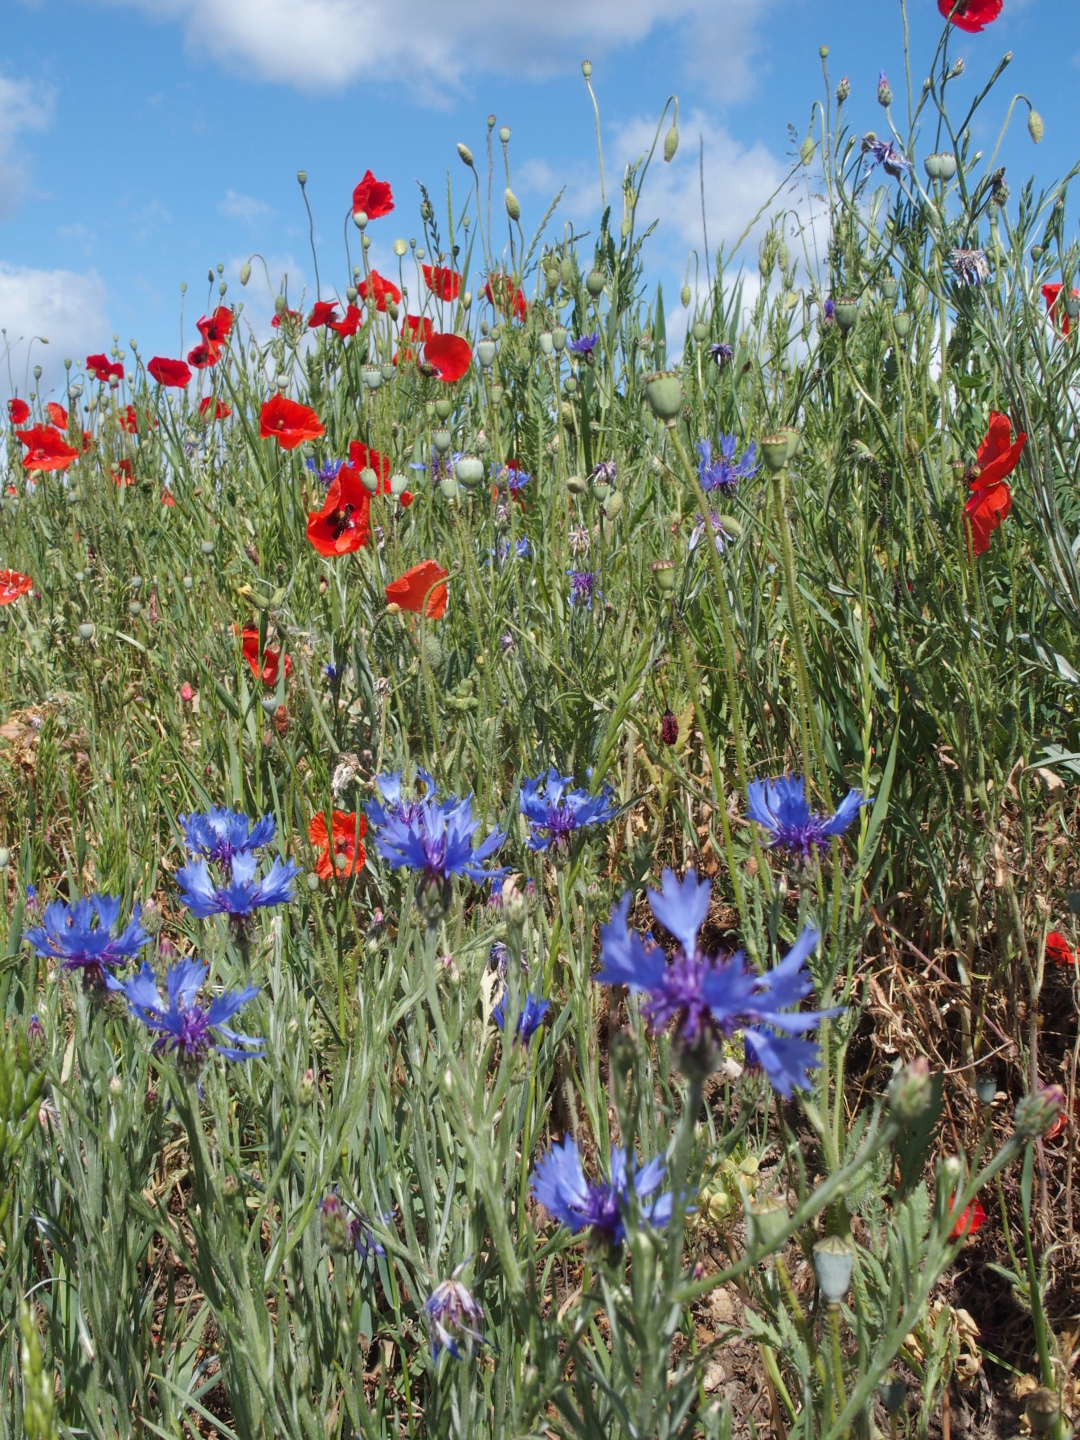 Poppies and cornflowers - strangely, these only grow near the main road and not next to the cornfields. I wonder what the agriculturists spray on their fields?